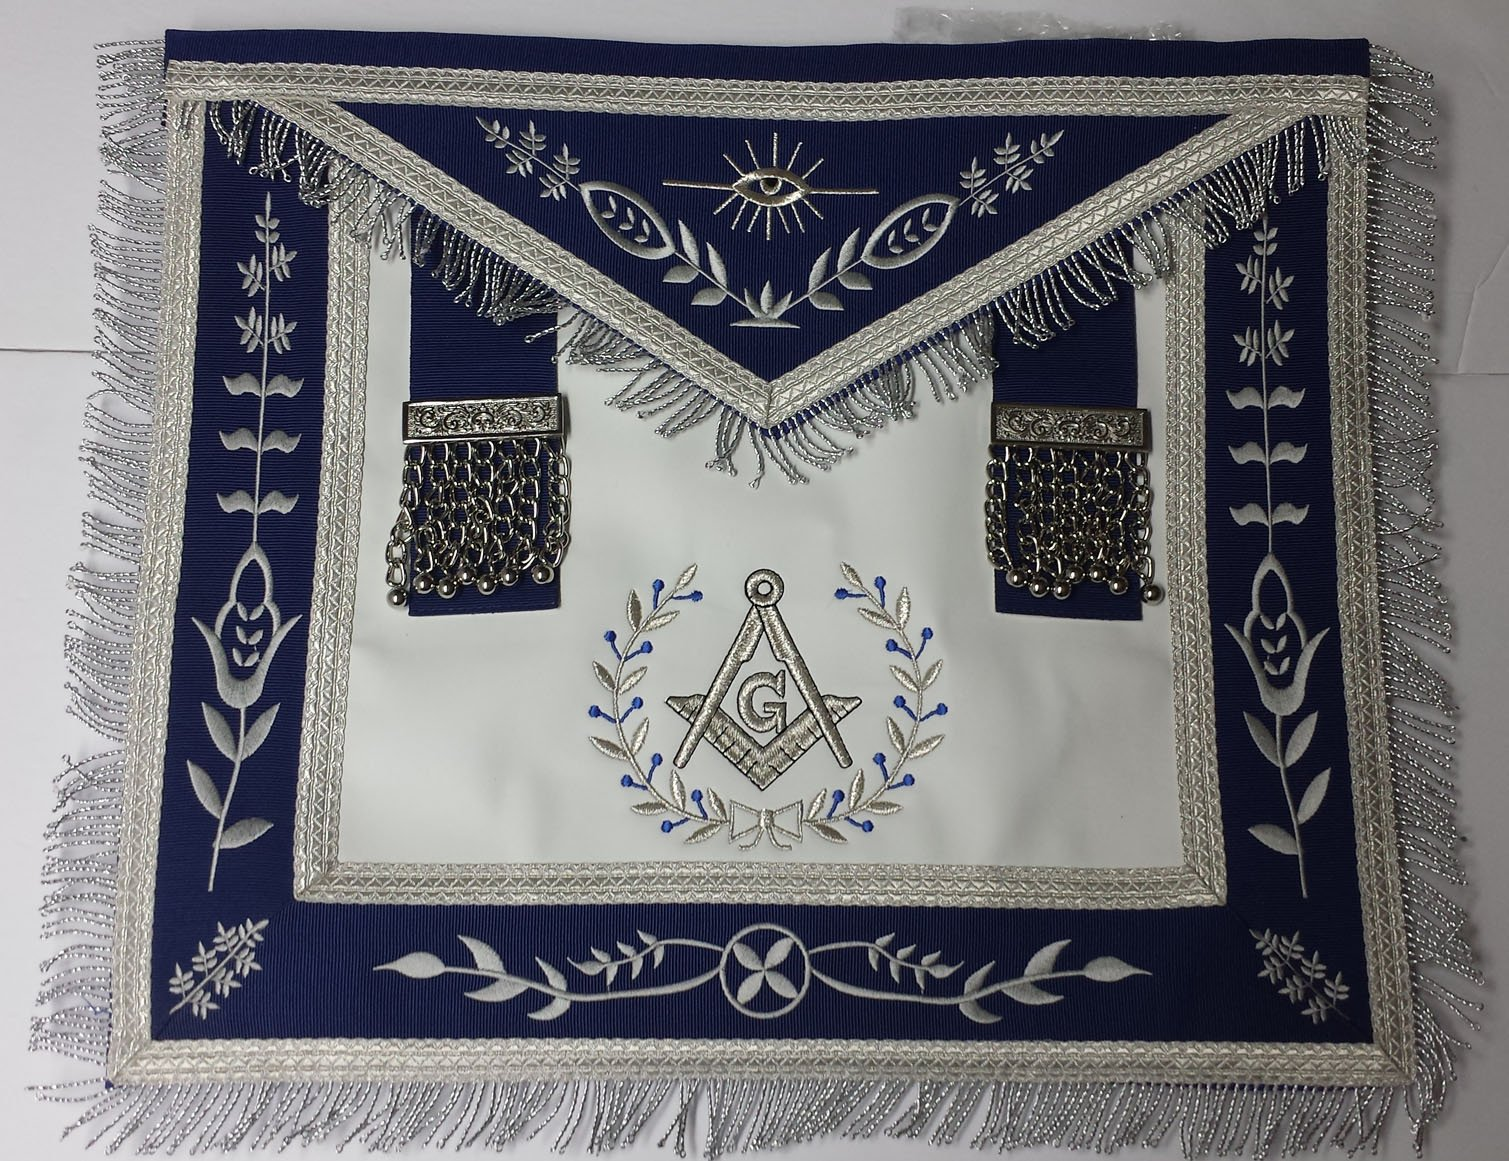 Masonic Apron--Master Mason Apron Navy Blue with Fringe Embroidered Silver G by Zest4Canada